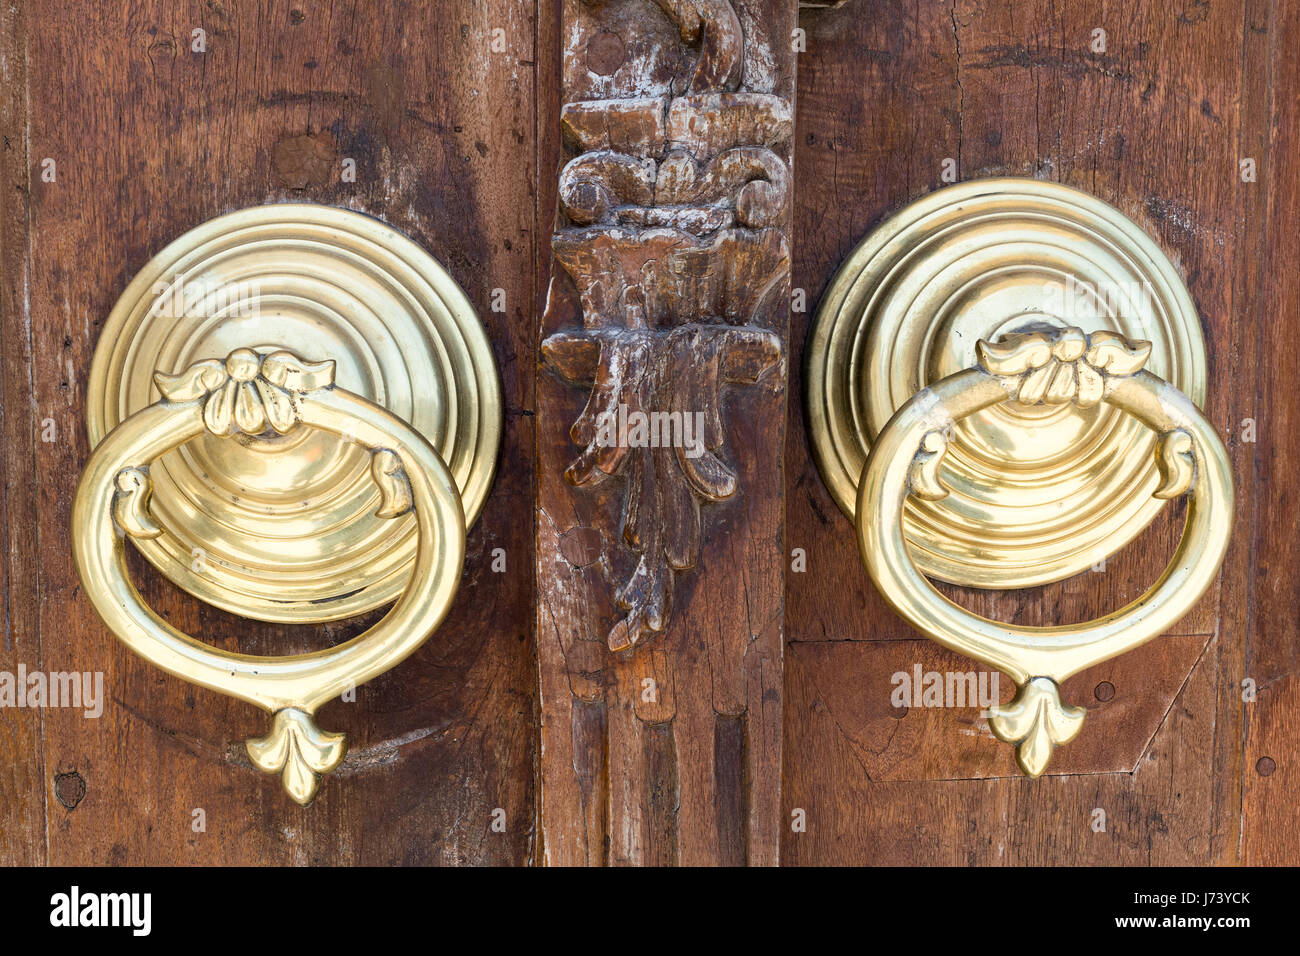 Closeup of two antique copper ornate door knockers over an aged wooden ornate door, Fatih Mosque, Istanbul, Turkey - Stock Image